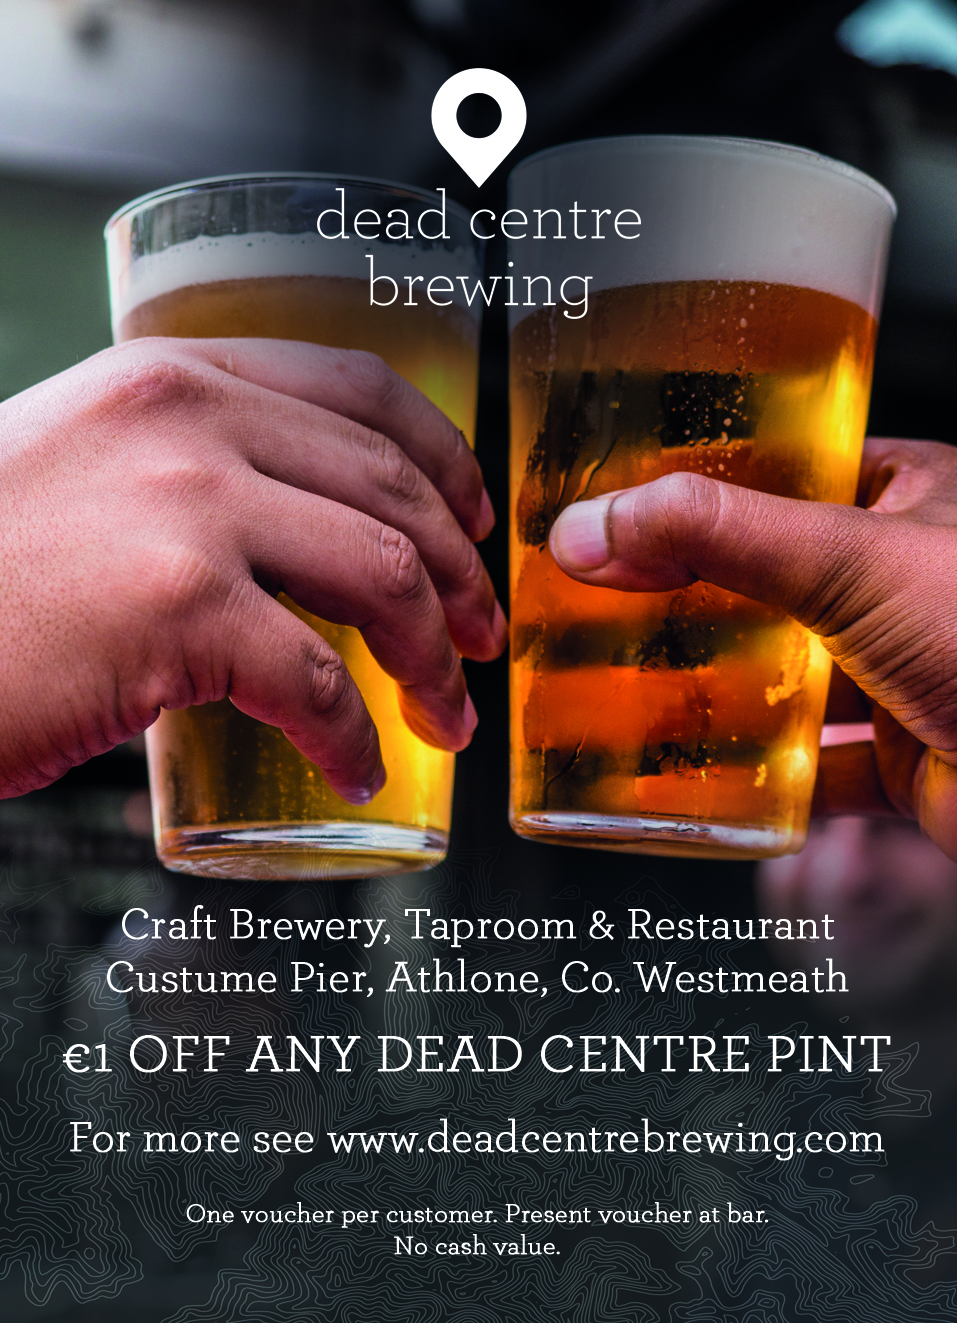 The most central craft brewery in Ireland. Dead Centre Brewing creates outstanding beers located in the heart of Athlone. - €1 OFF ANY DEAD CENTRE PINT